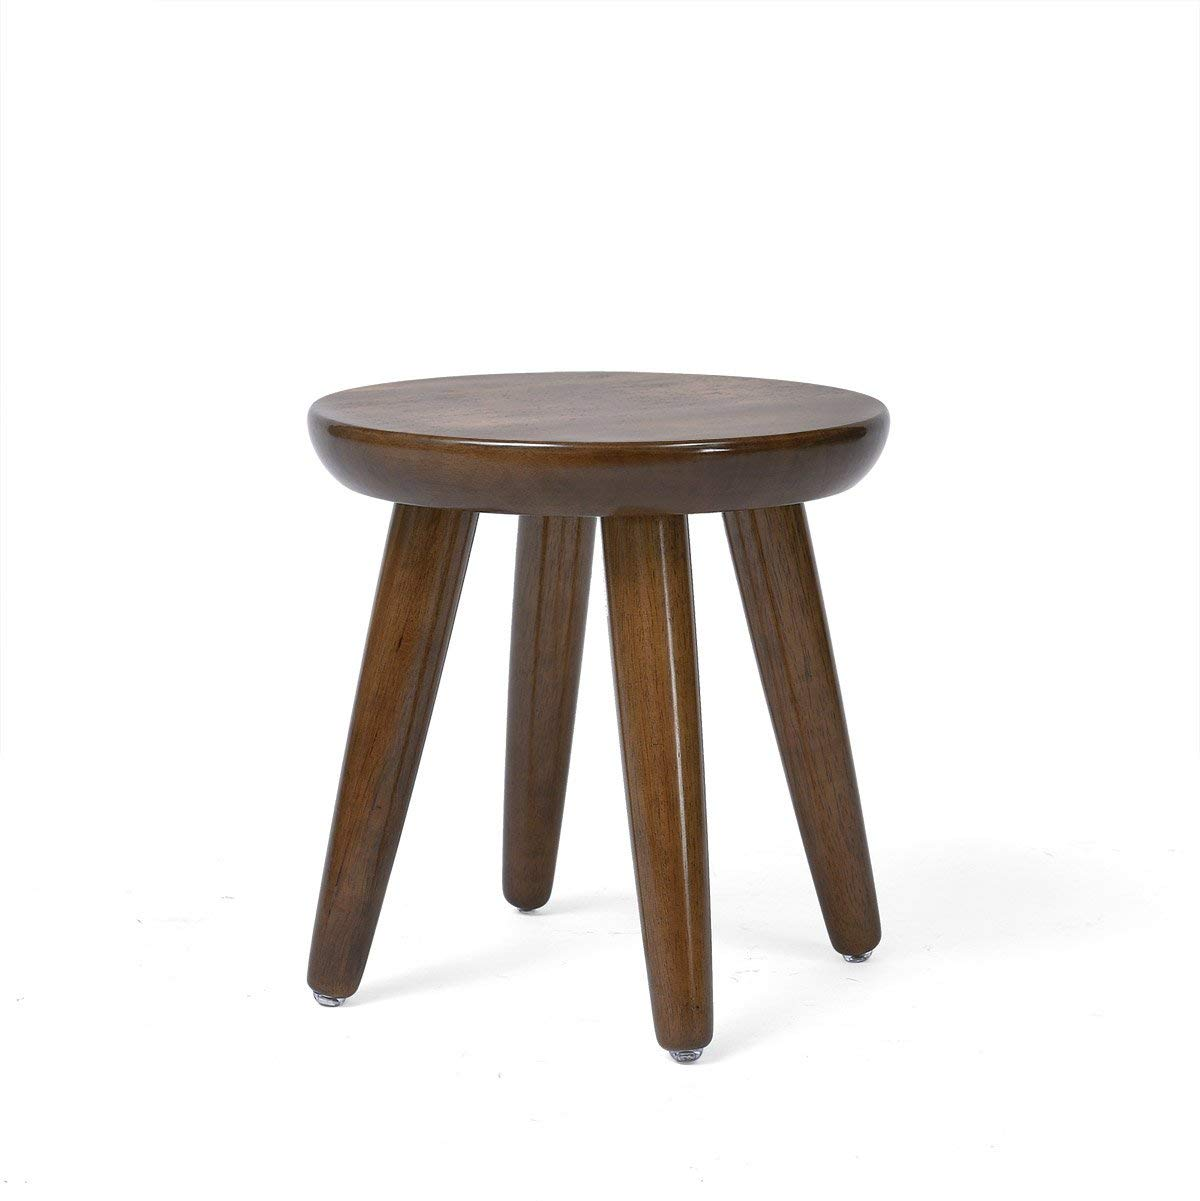 1  A EU90 Solid Wood Stool Creative Round Stool Small Round Table Stool Stool Fashion Stool Stool Stool Stool Home Small Stool -Comfortable decoration (color   2 , Size   B)